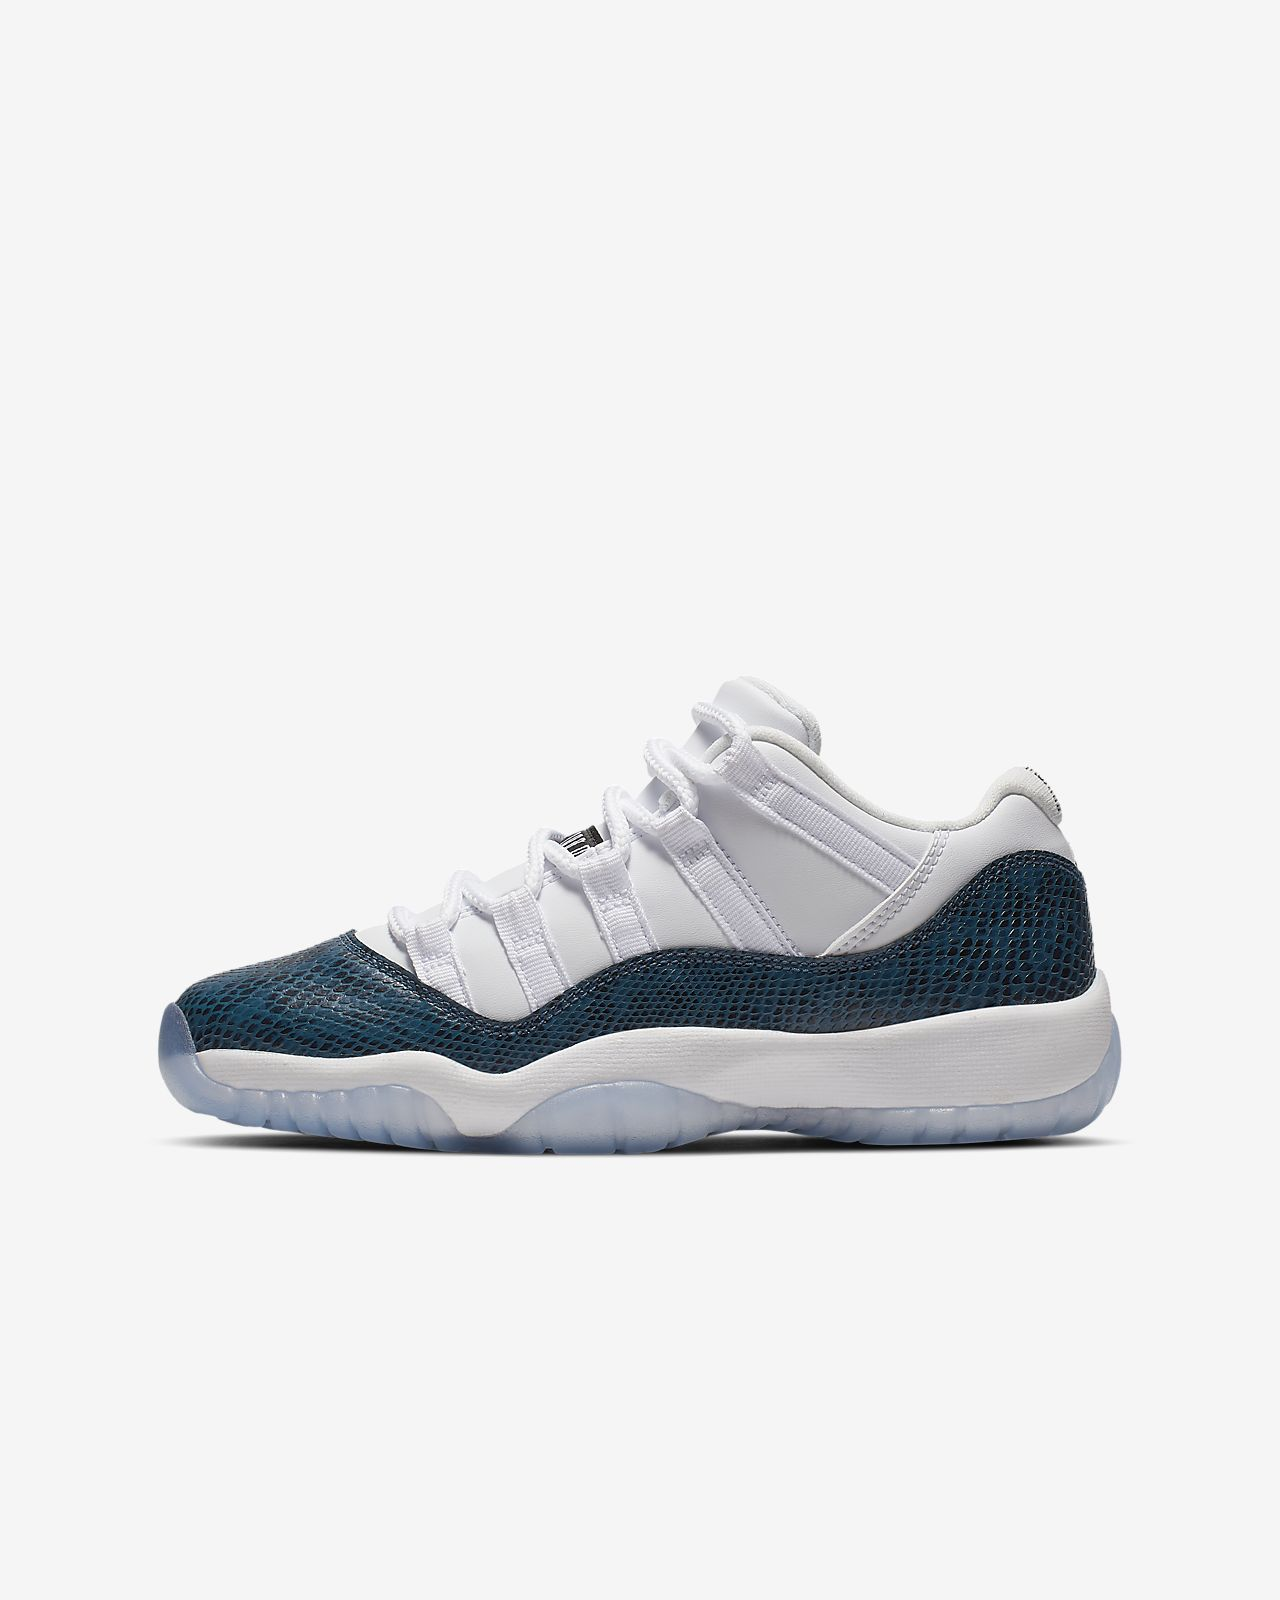 pretty nice 78b3a 999df ... Air Jordan 11 Retro Low LE Big Kids  Shoe